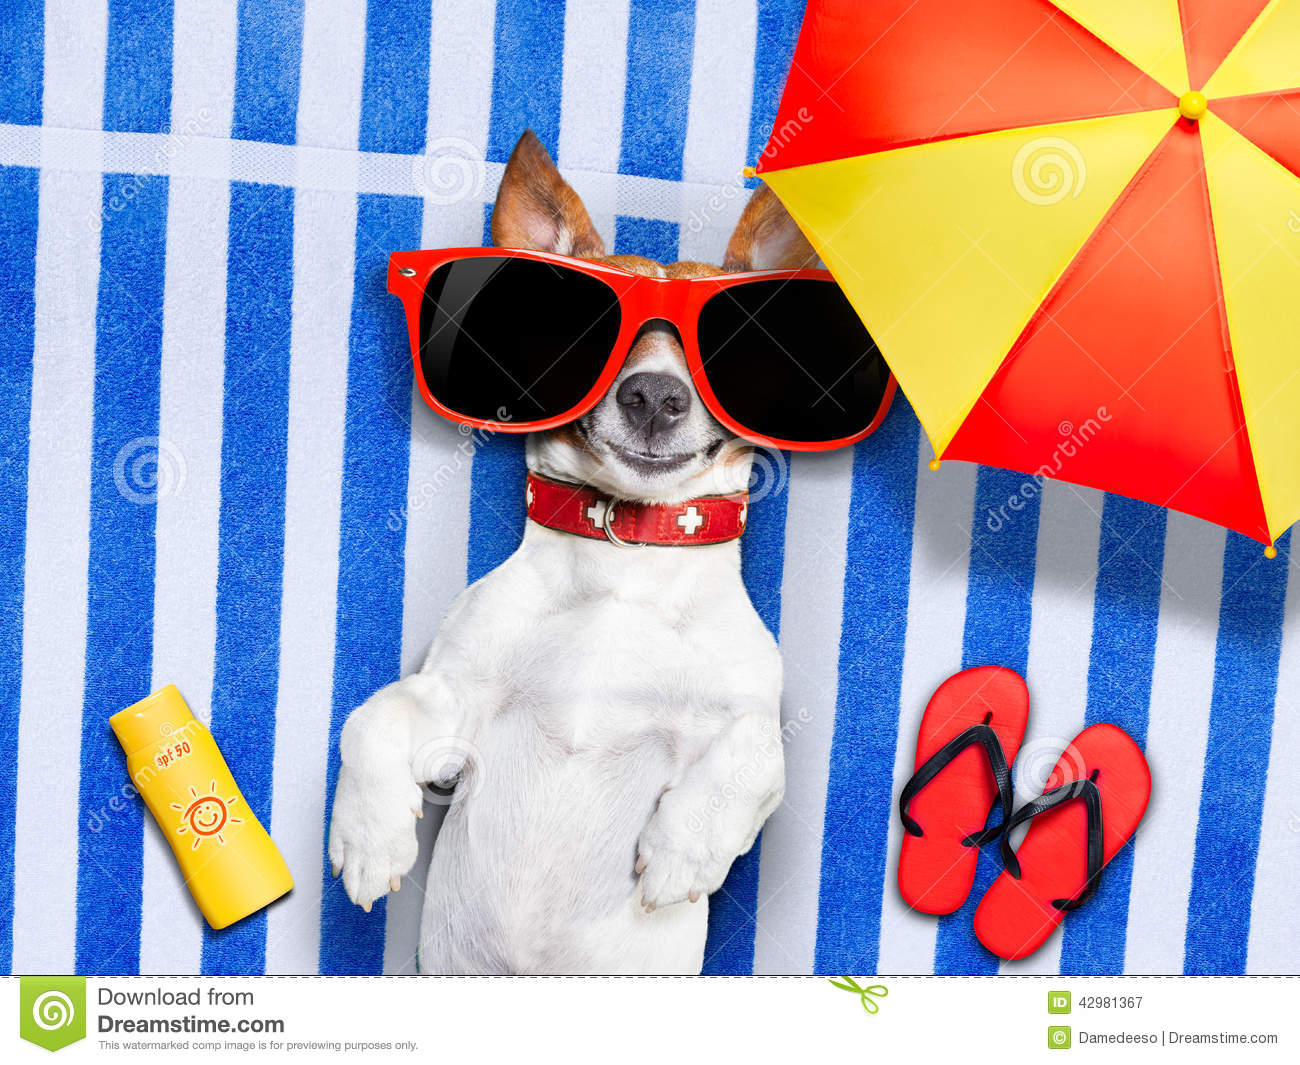 ... fancy towel under the umbrella and with red sunglasses on sun tanning